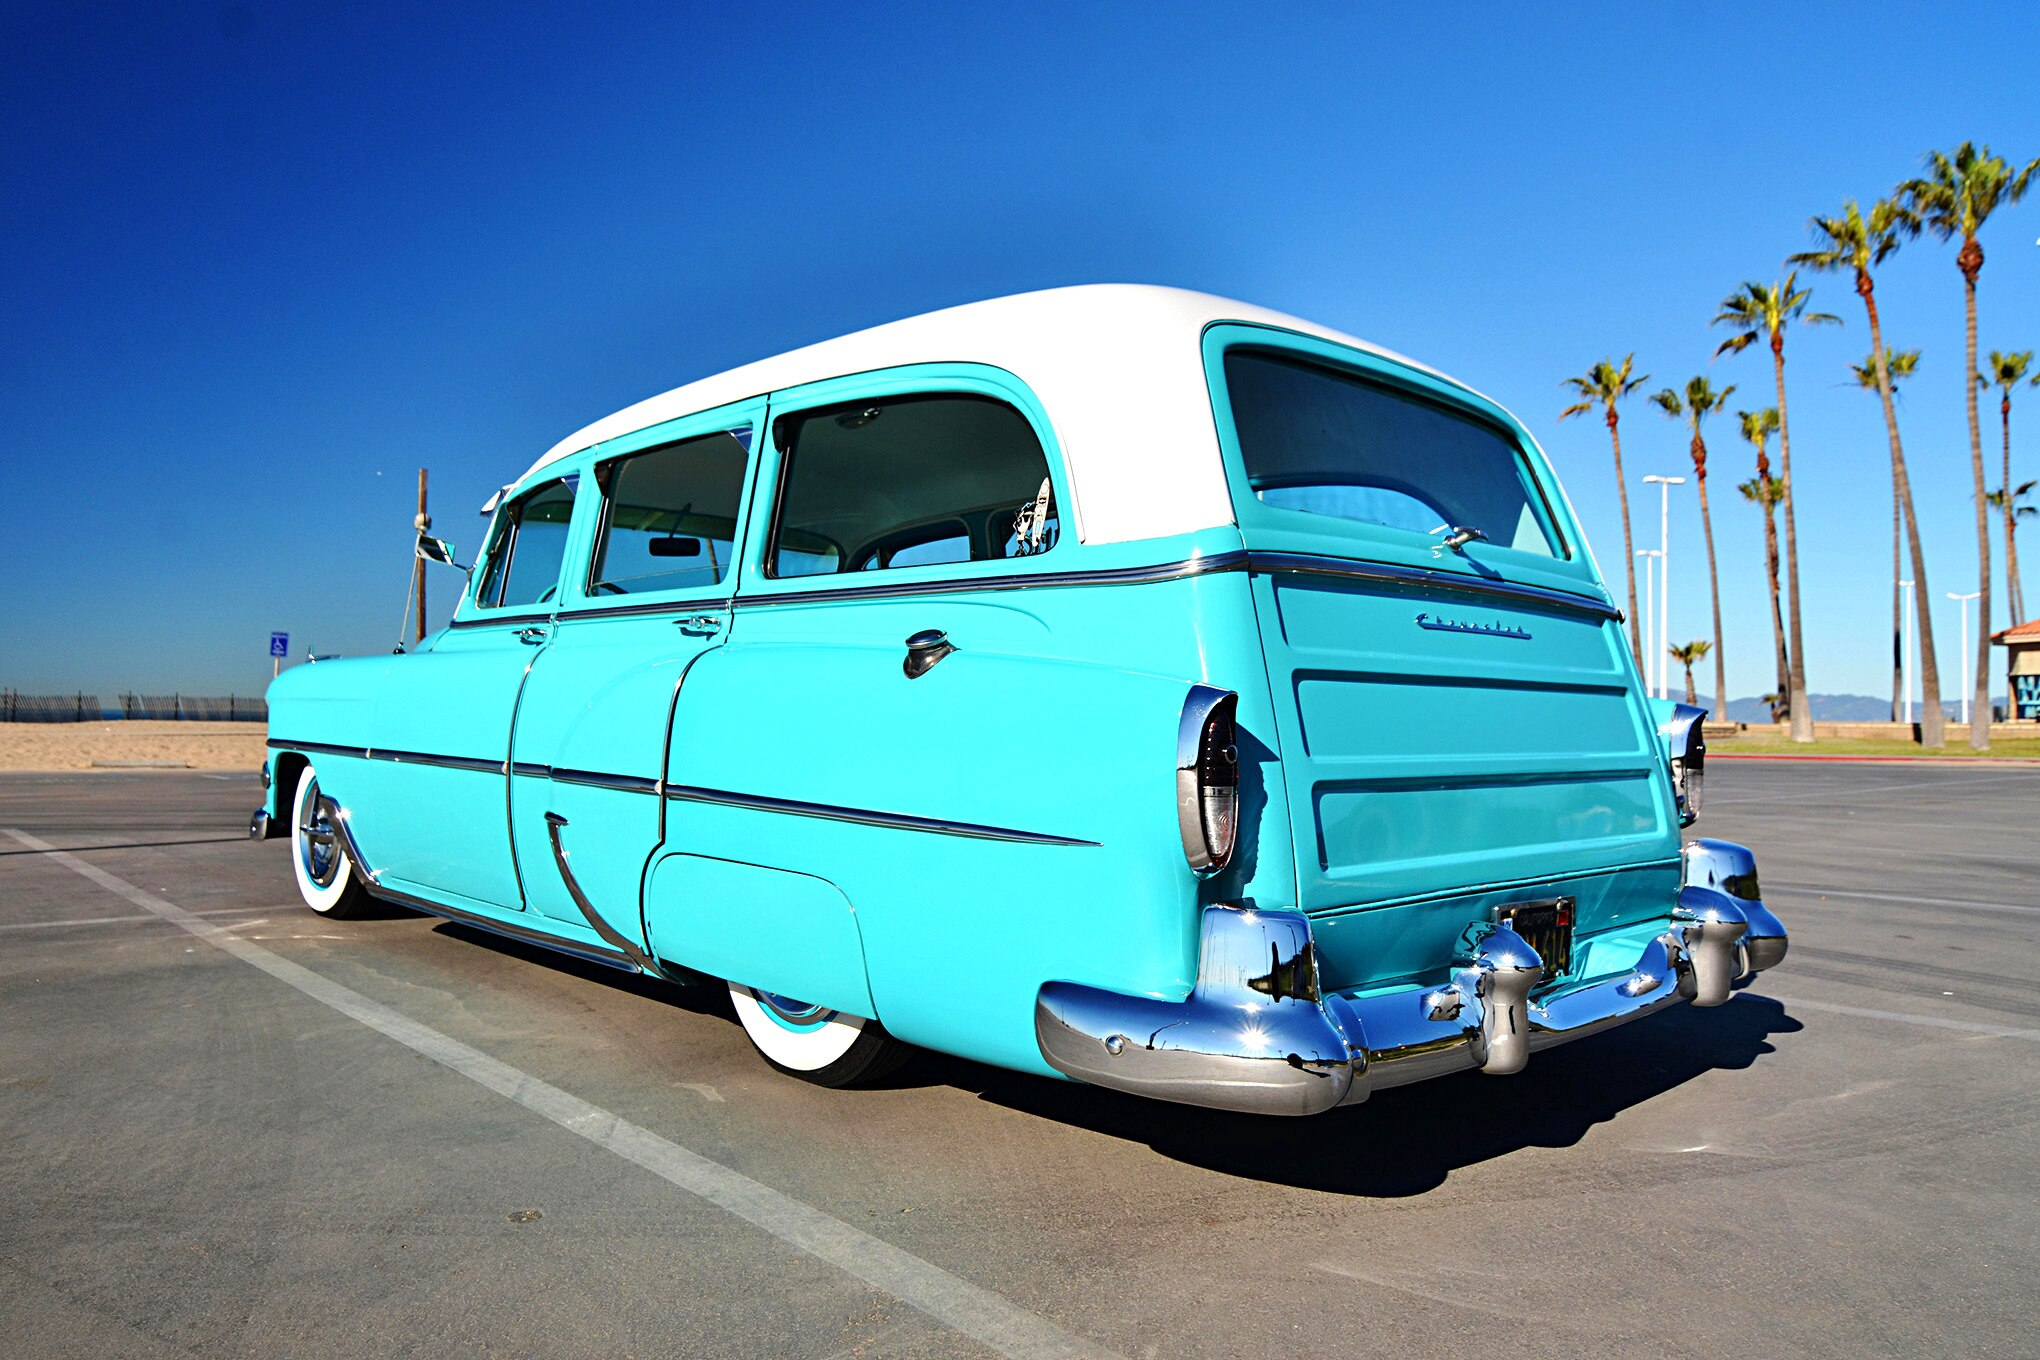 1954 Chevrolet Station Wagon - Passing the Torch ...